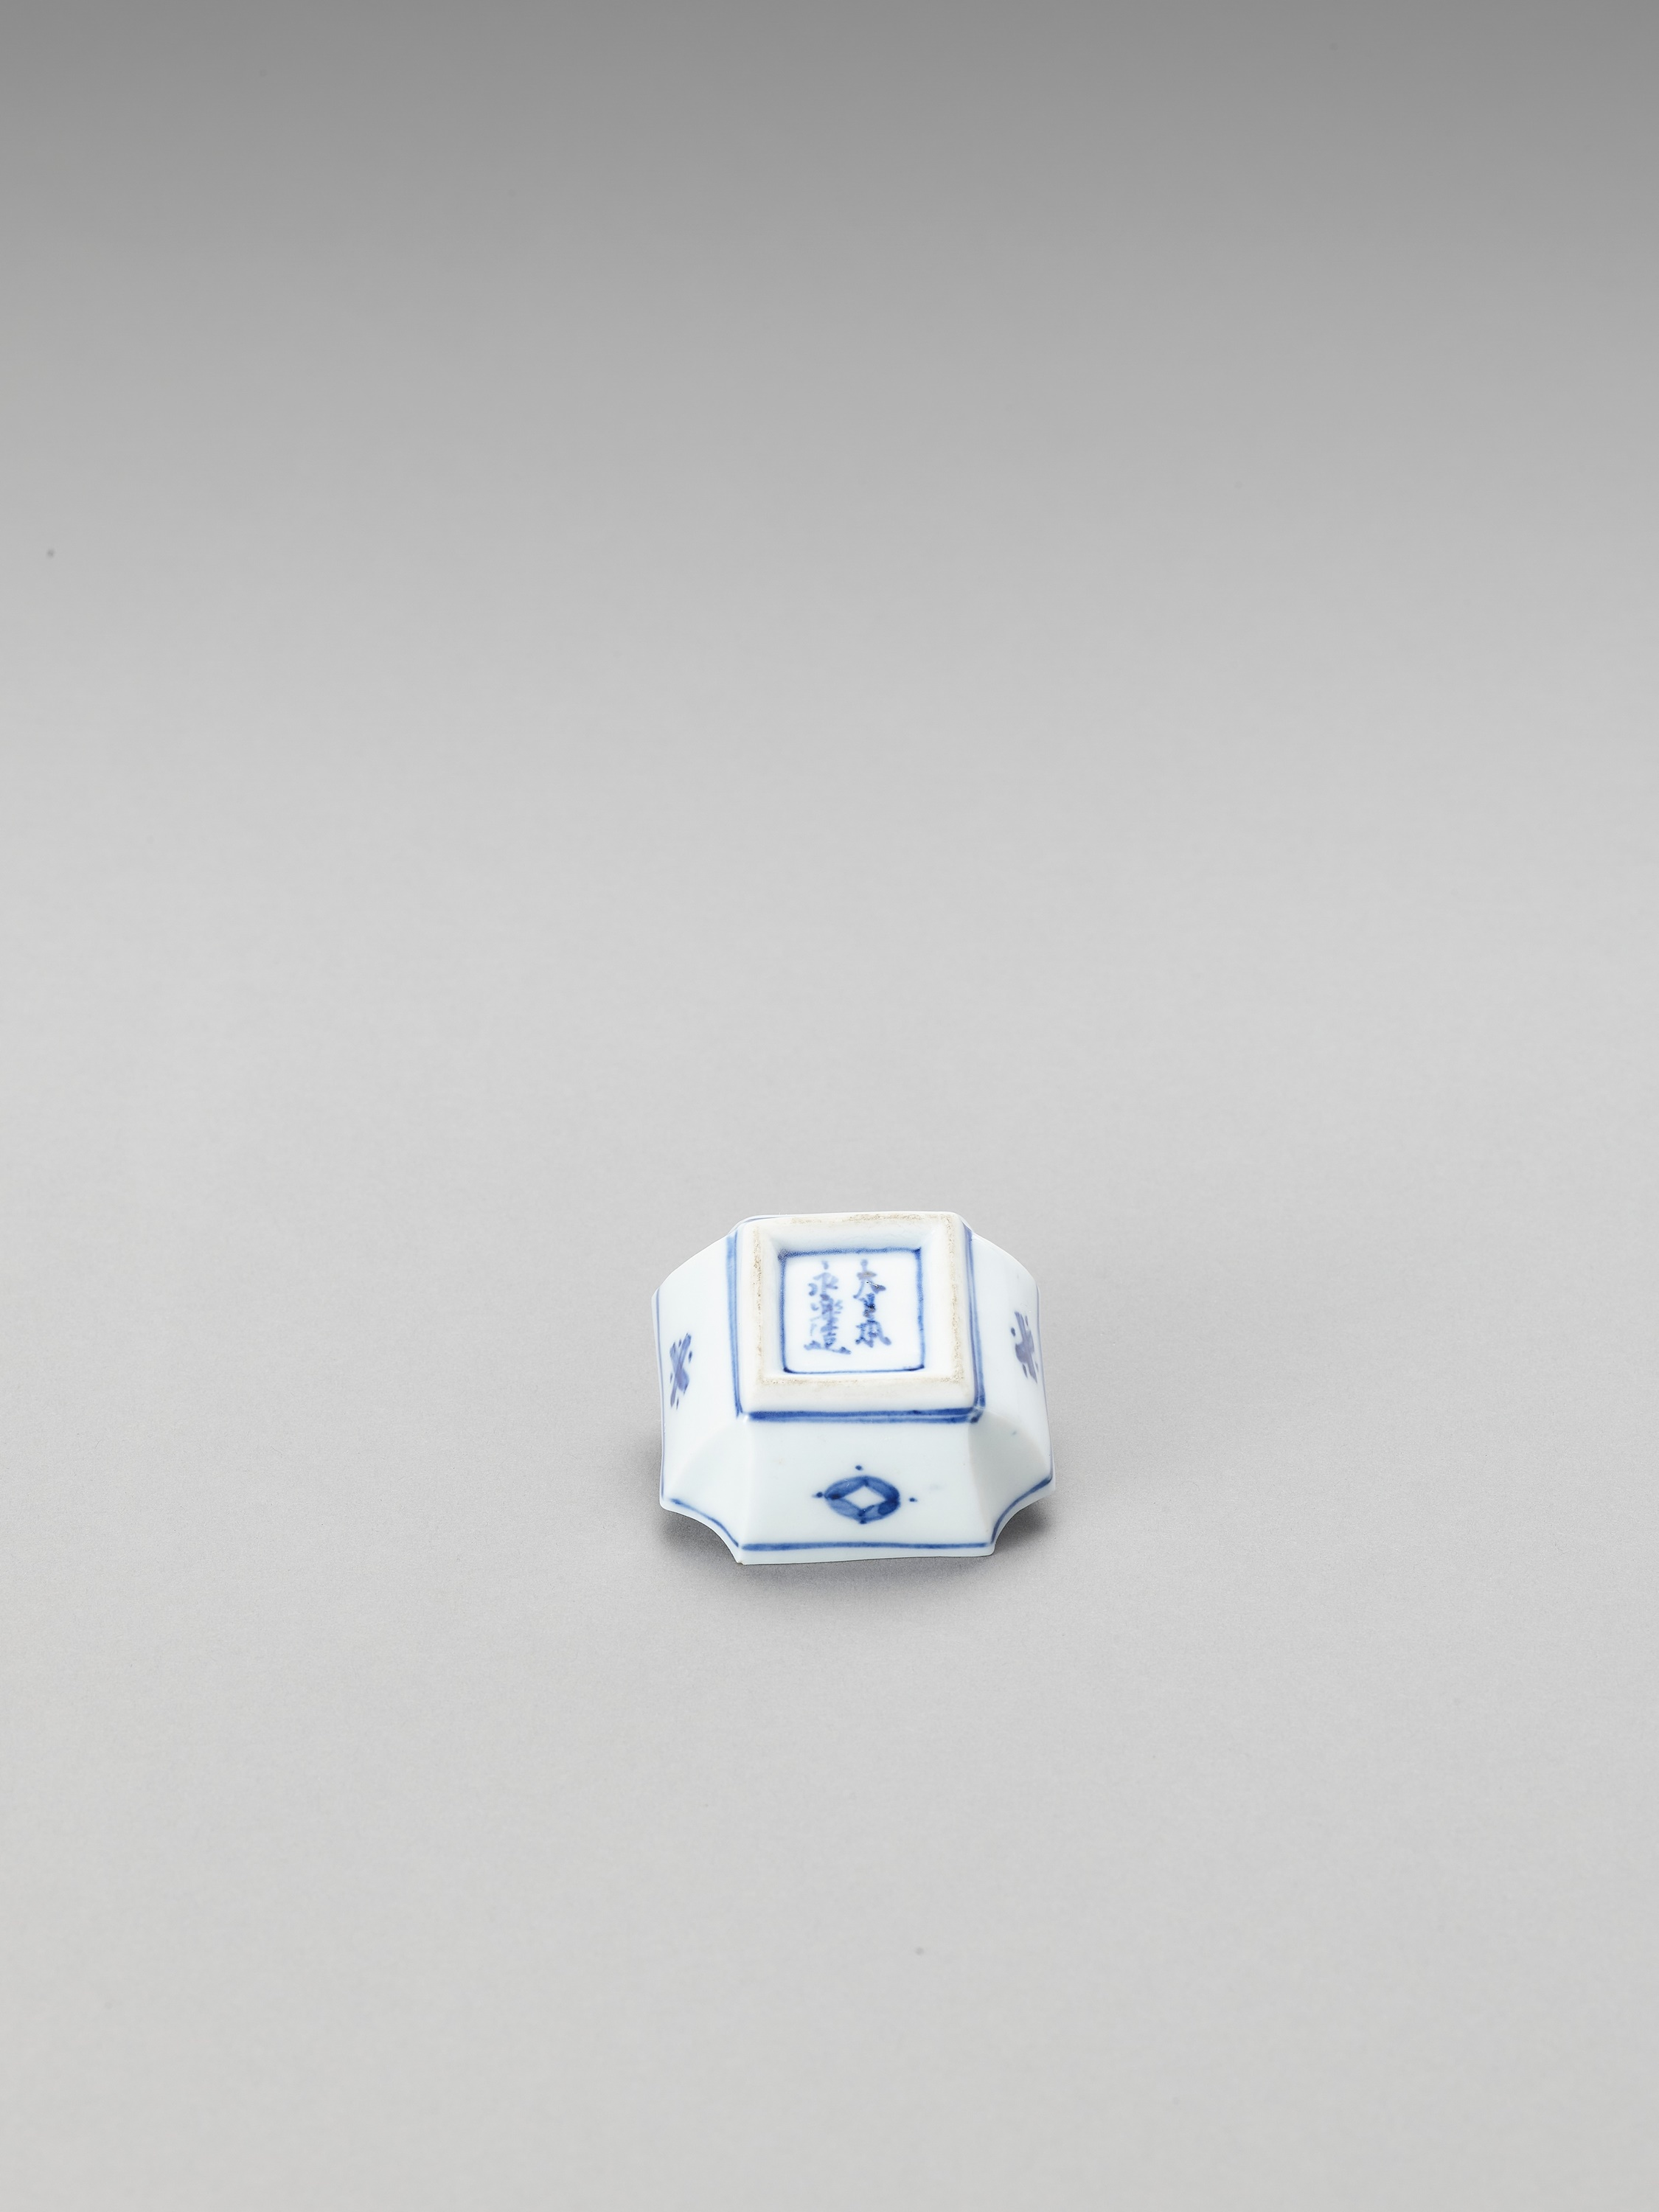 A SMALL BLUE AND WHITE PORCELAIN SAUCER - Image 3 of 5